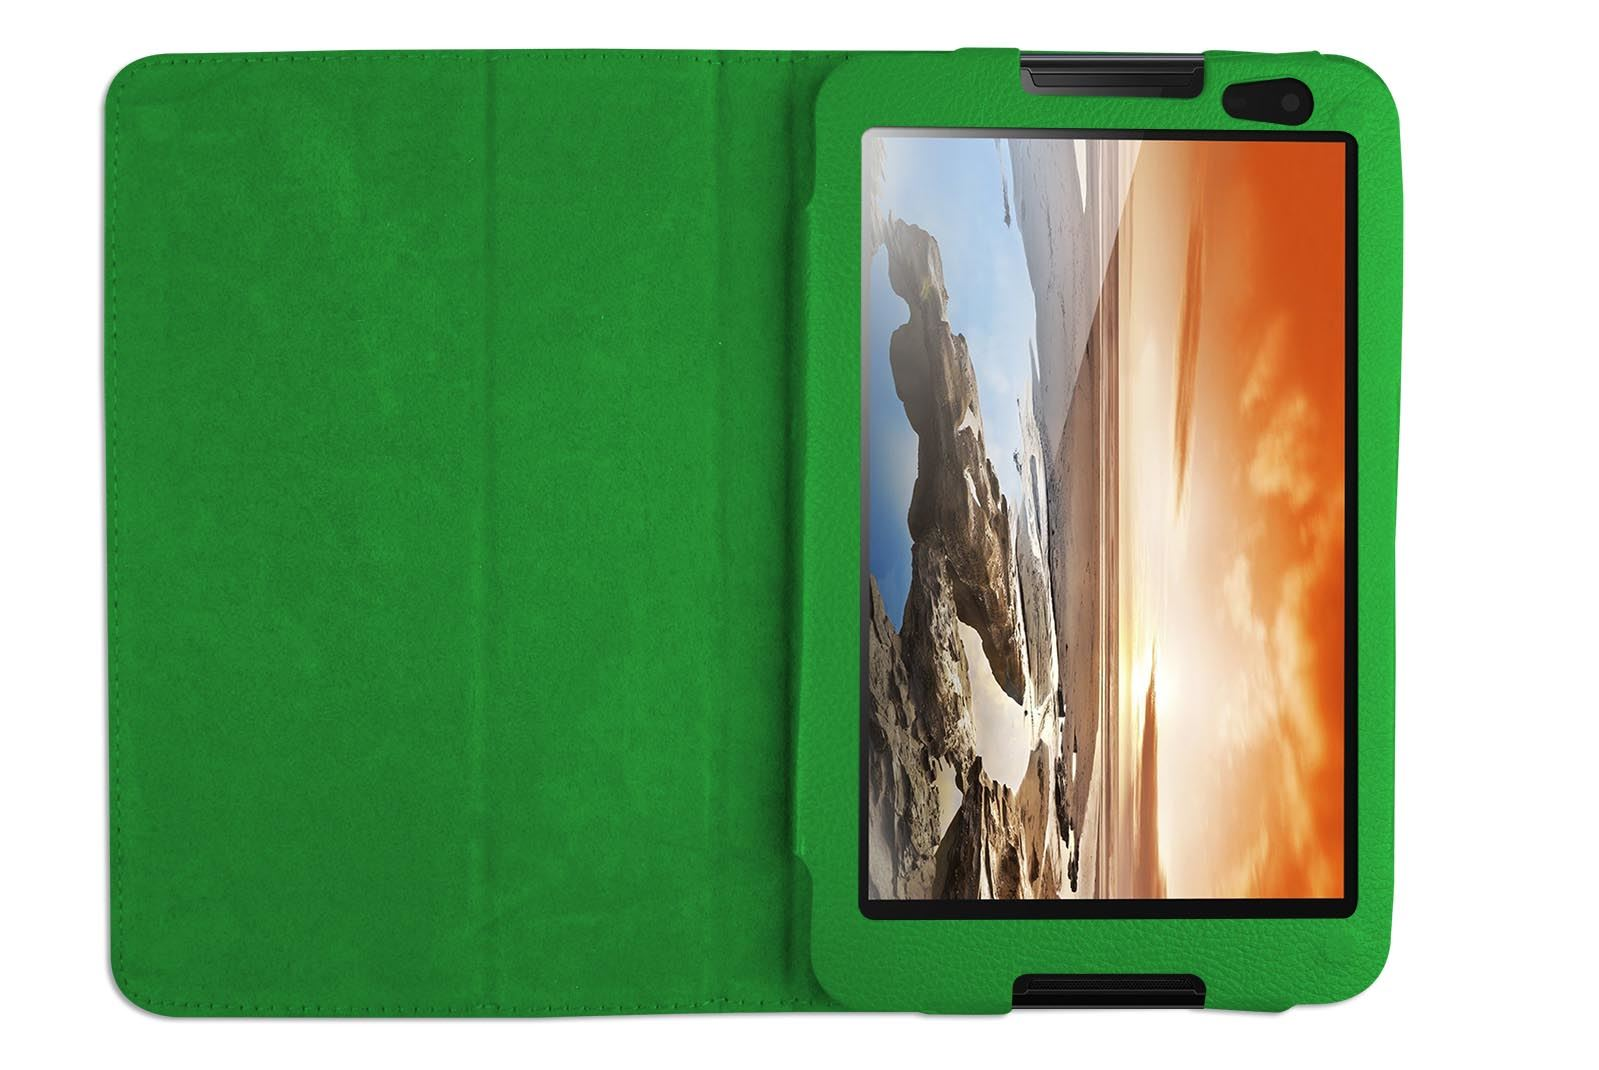 Hellfire-Trading-Magnetic-PU-Leather-Case-Cover-for-Lenovo-IdeaTab-A8-50-A5500 Indexbild 23